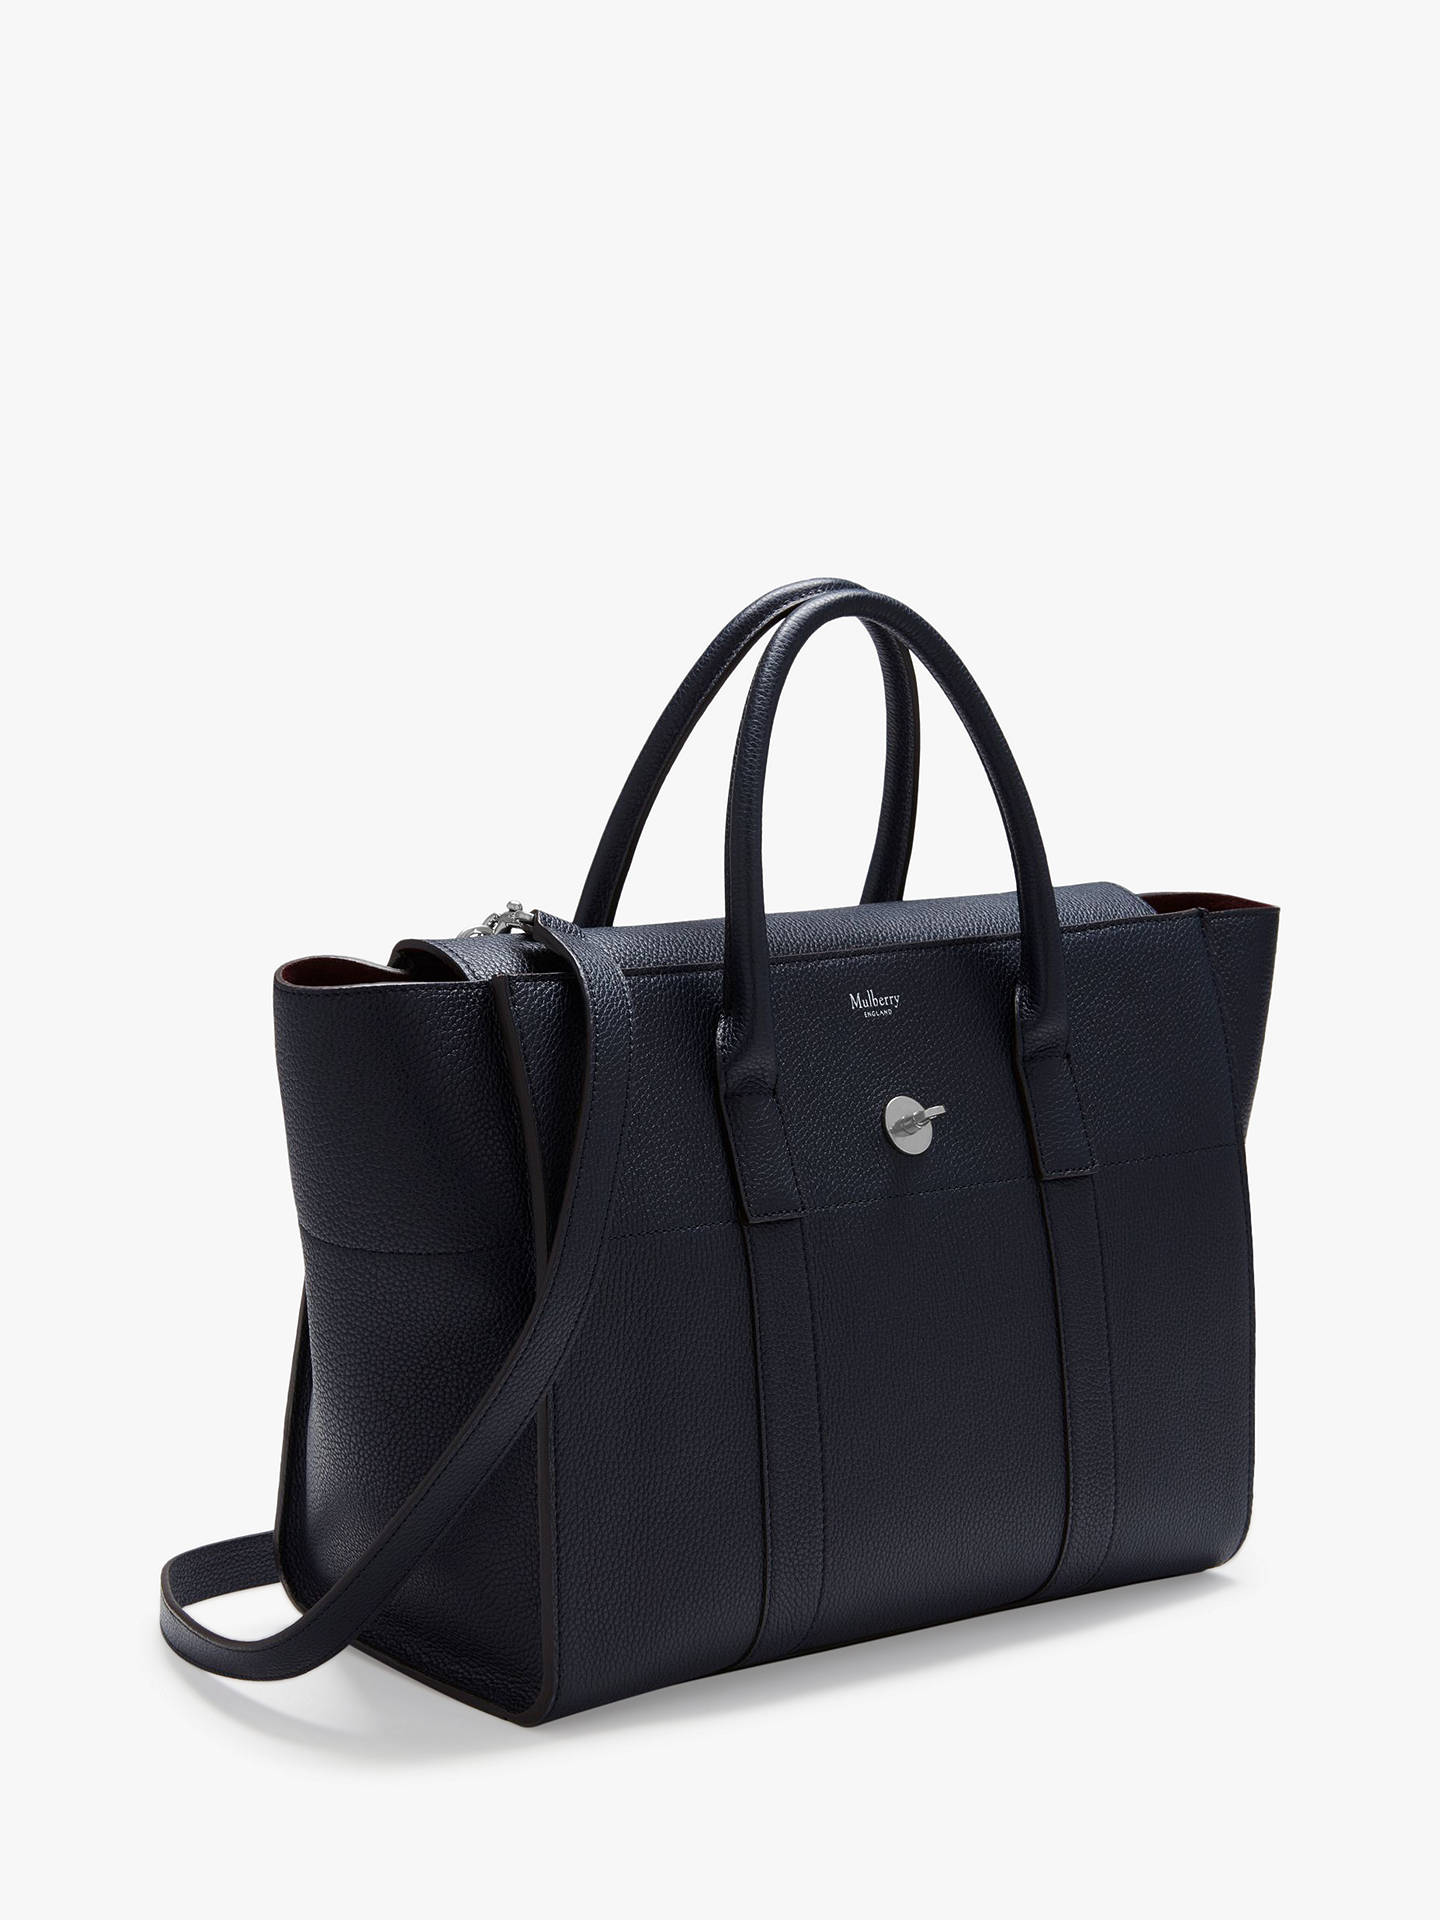 9525a55d35 ... Buy Mulberry Bayswater Small Classic Grain Strap Satchel Bag